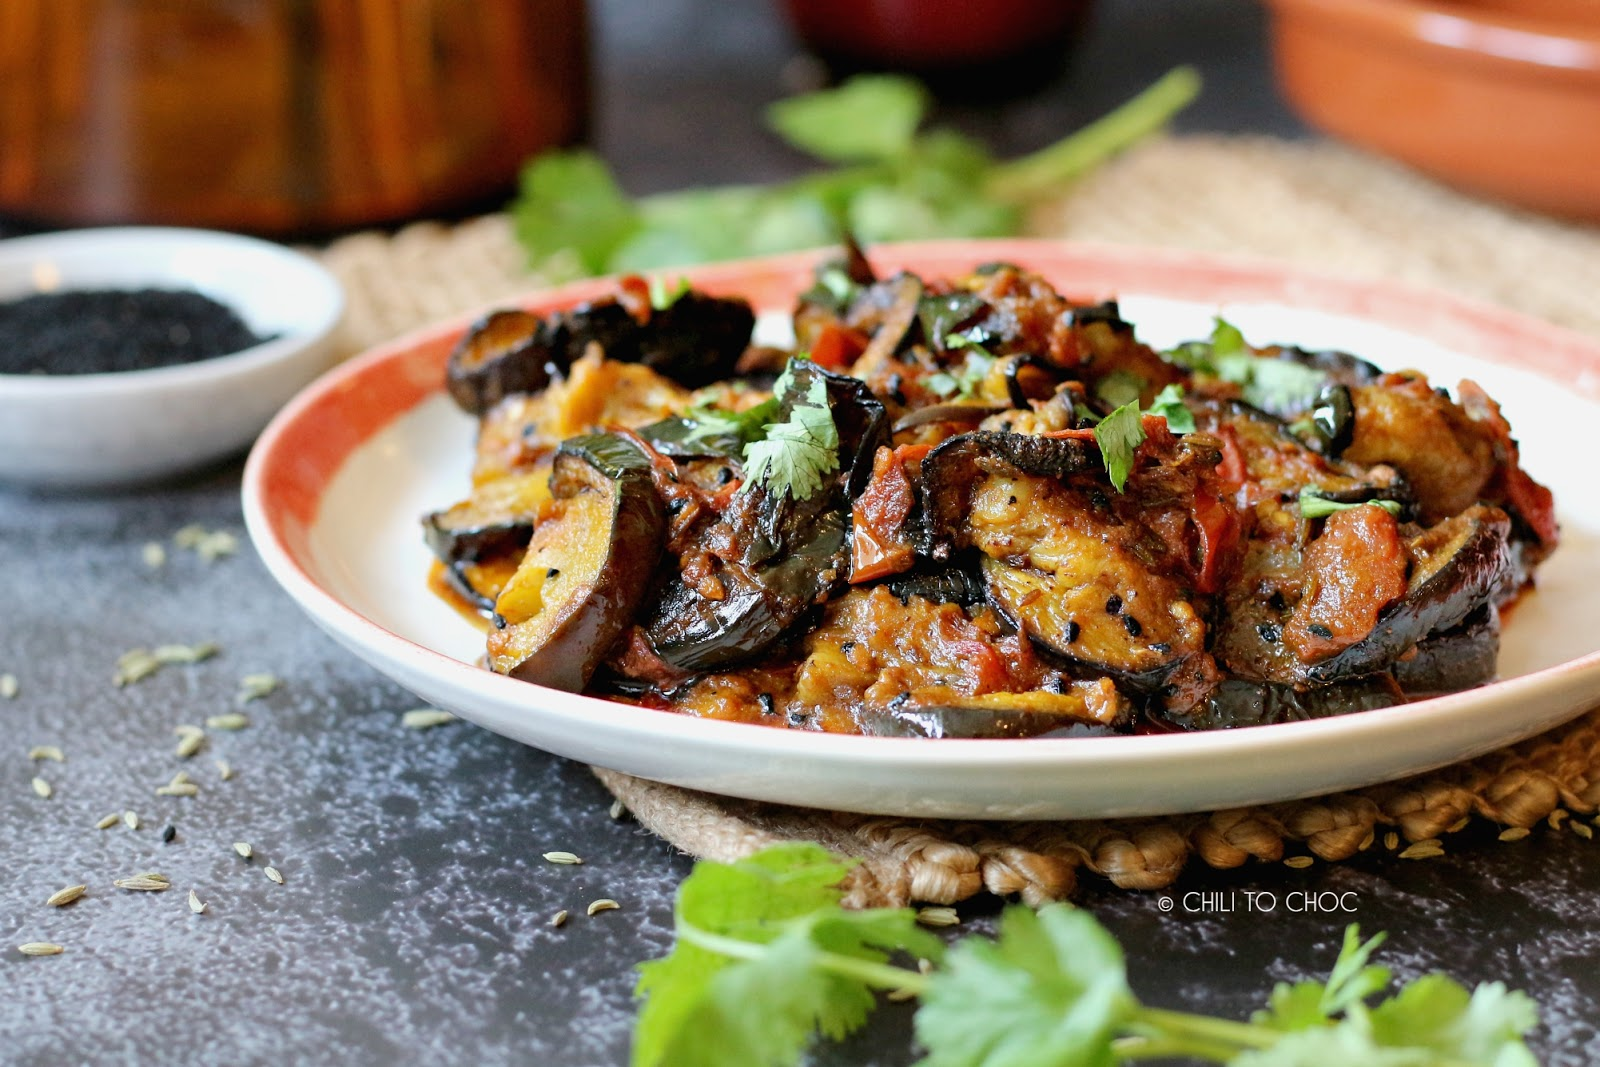 Achari Baingan (Eggplant with Pickling Spices)